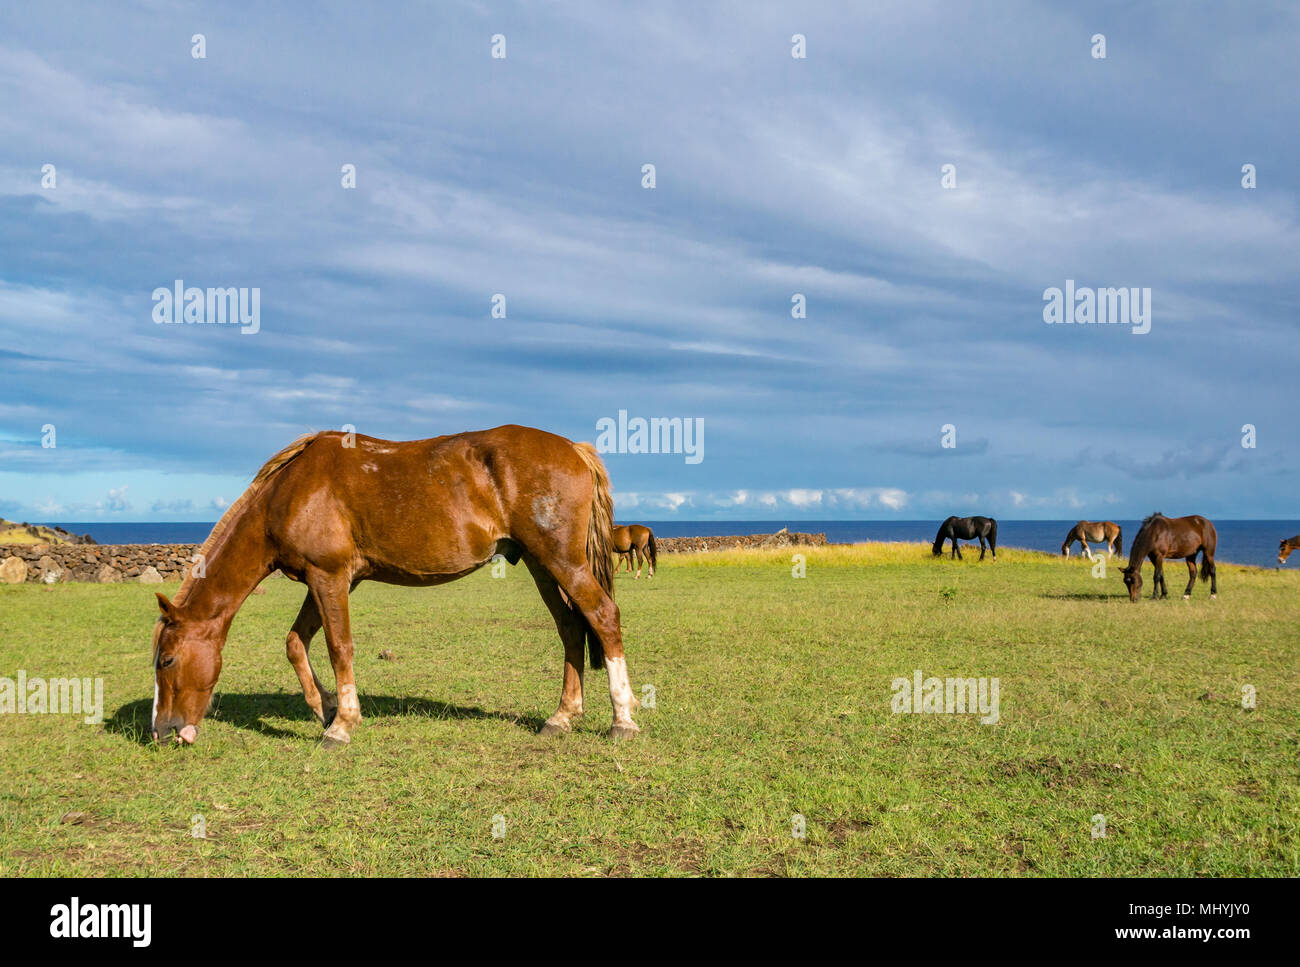 Wild horses grazing on grass next to the sea, with blue sky, Easter Island, Chile - Stock Image